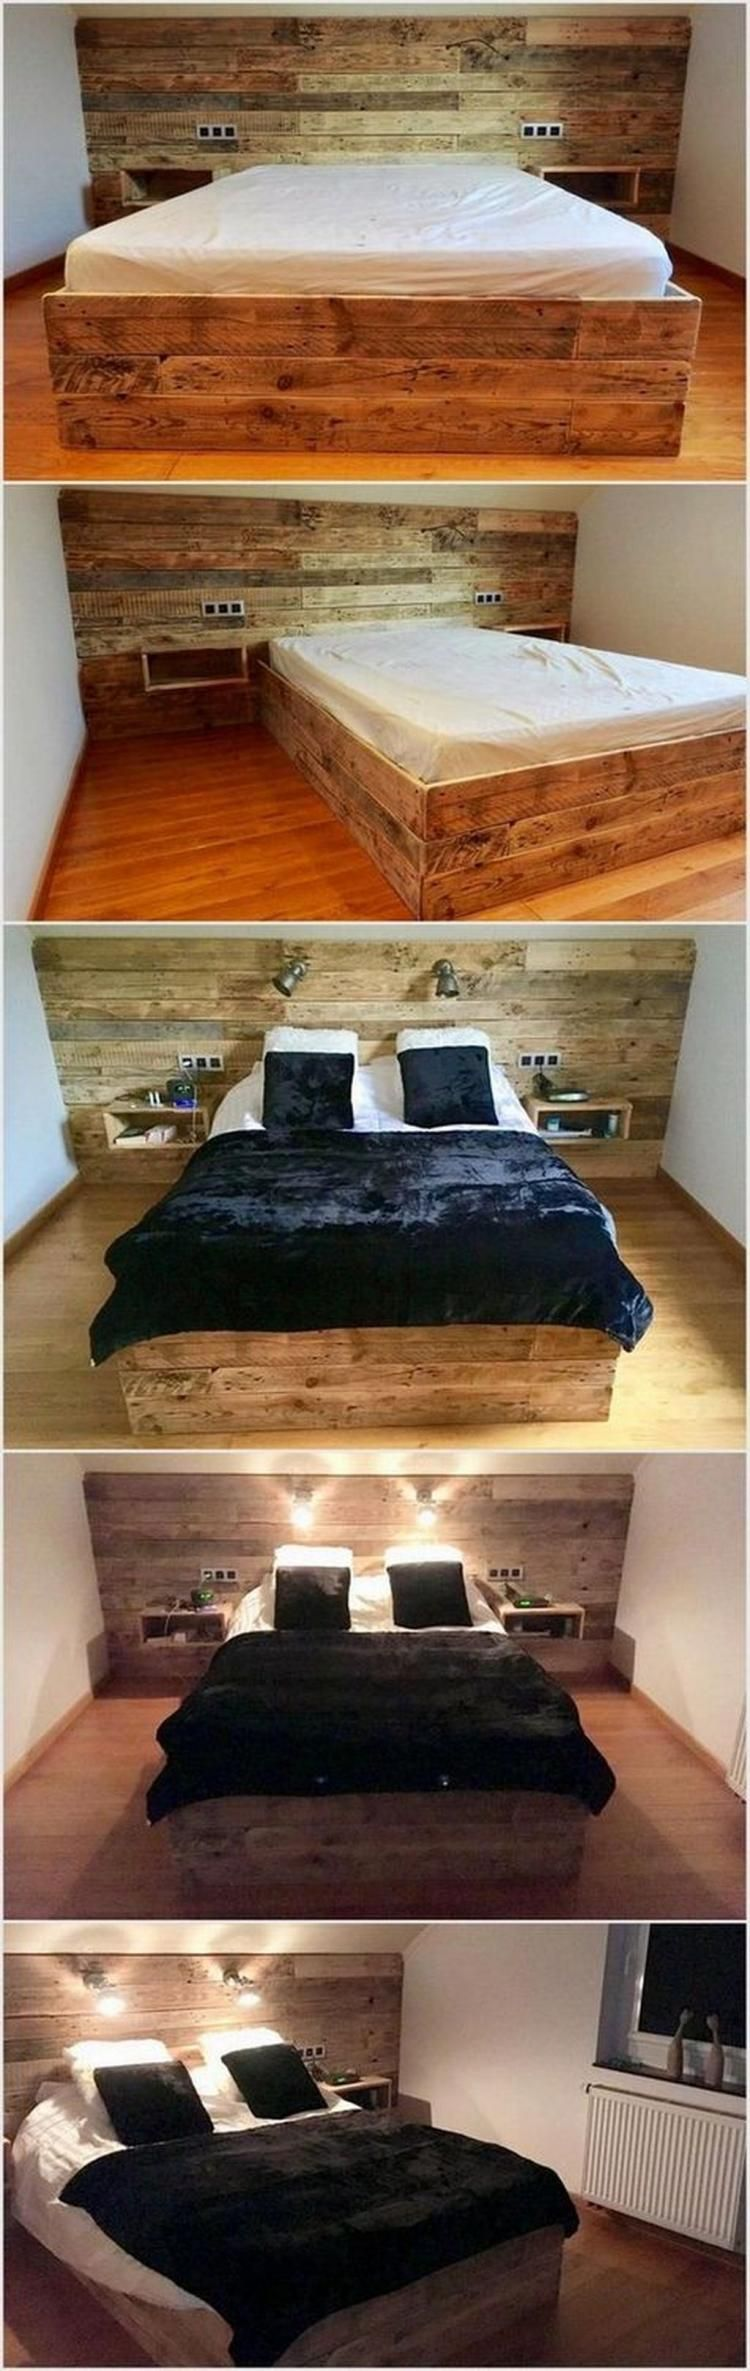 Unusual pallet furniture project ideas salus home pinterest